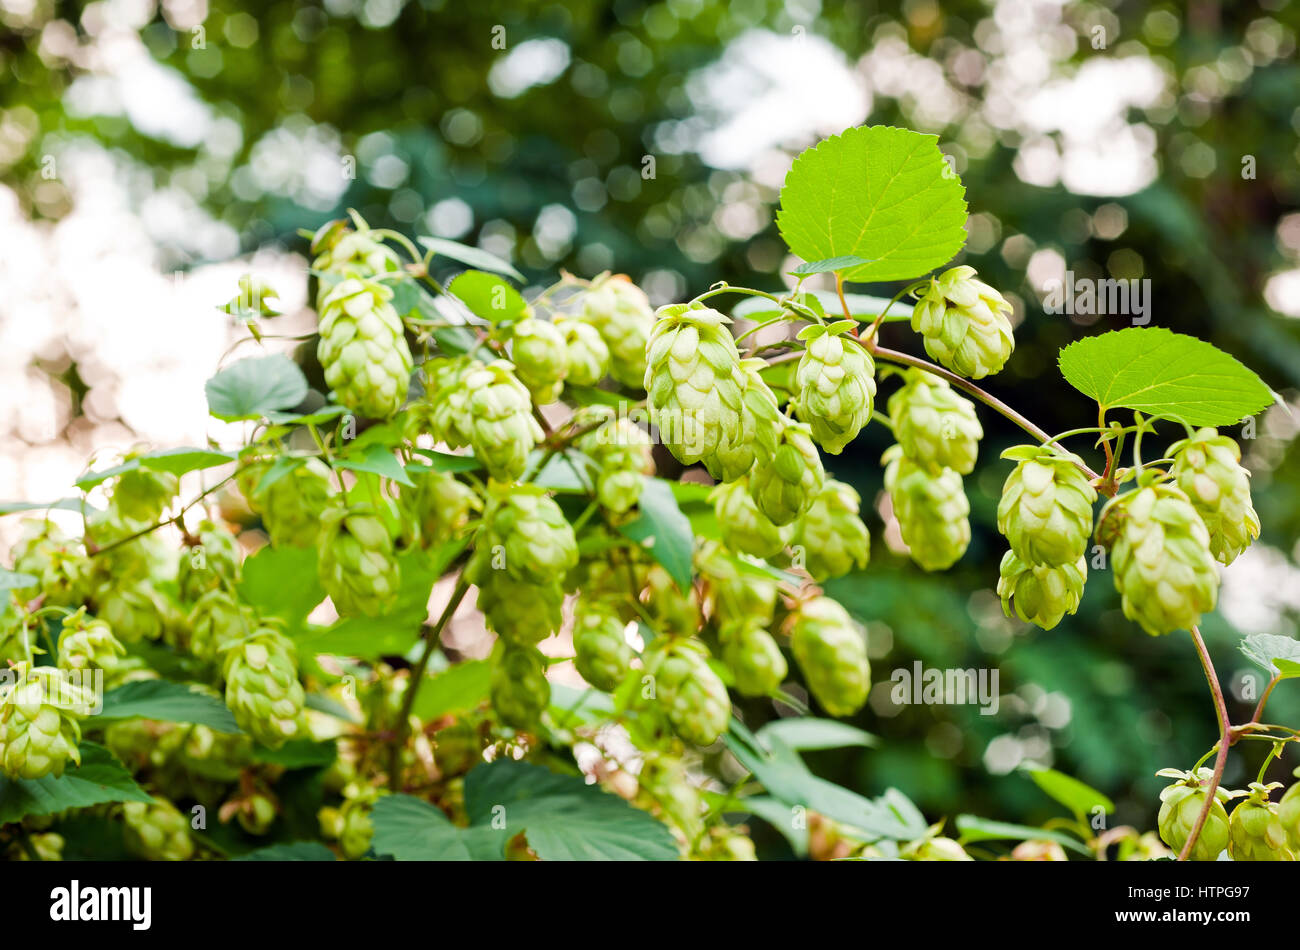 hops branch background with leaves - Stock Image